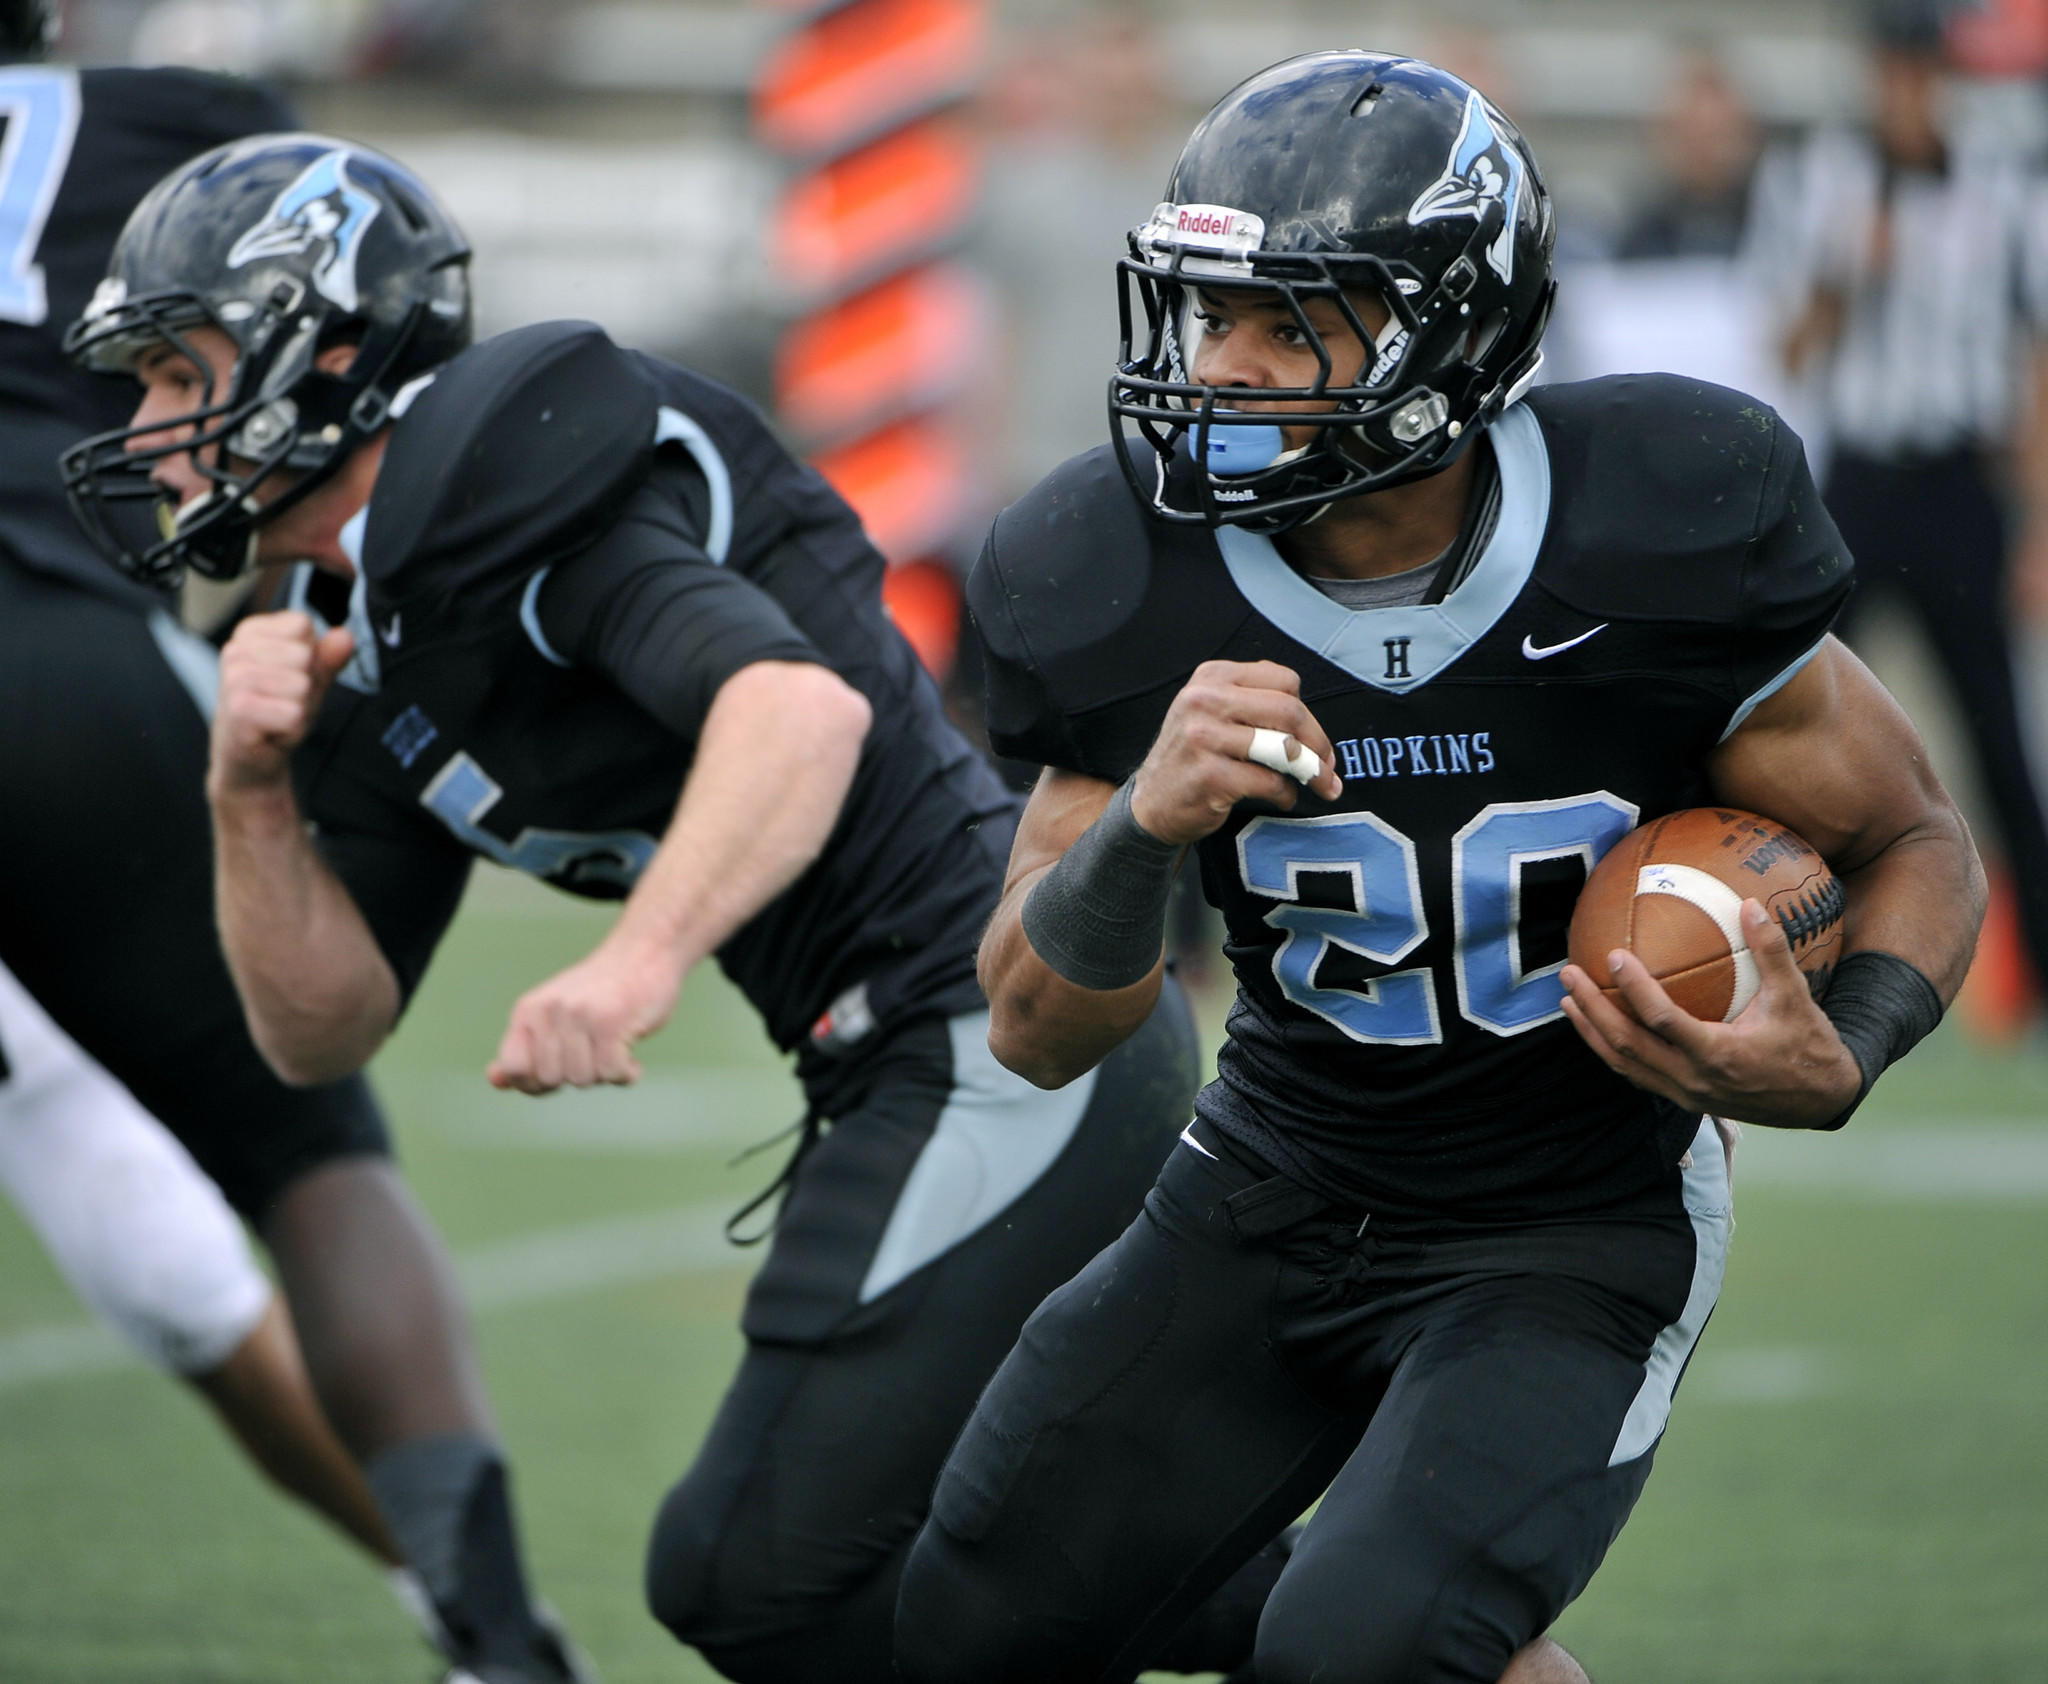 Brandon Cherry rushed for 986 yards and eight touchdowns last season for a Johns Hopkins football team that went undefeated in the regular season.